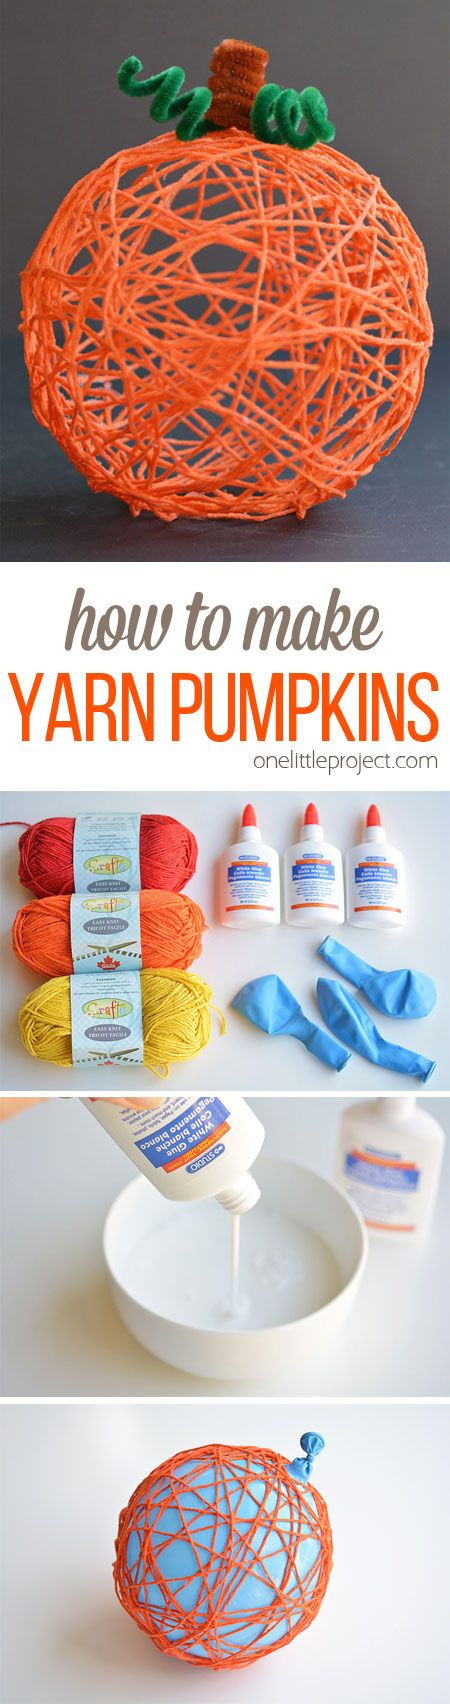 fall craft ideas for kids pinterest